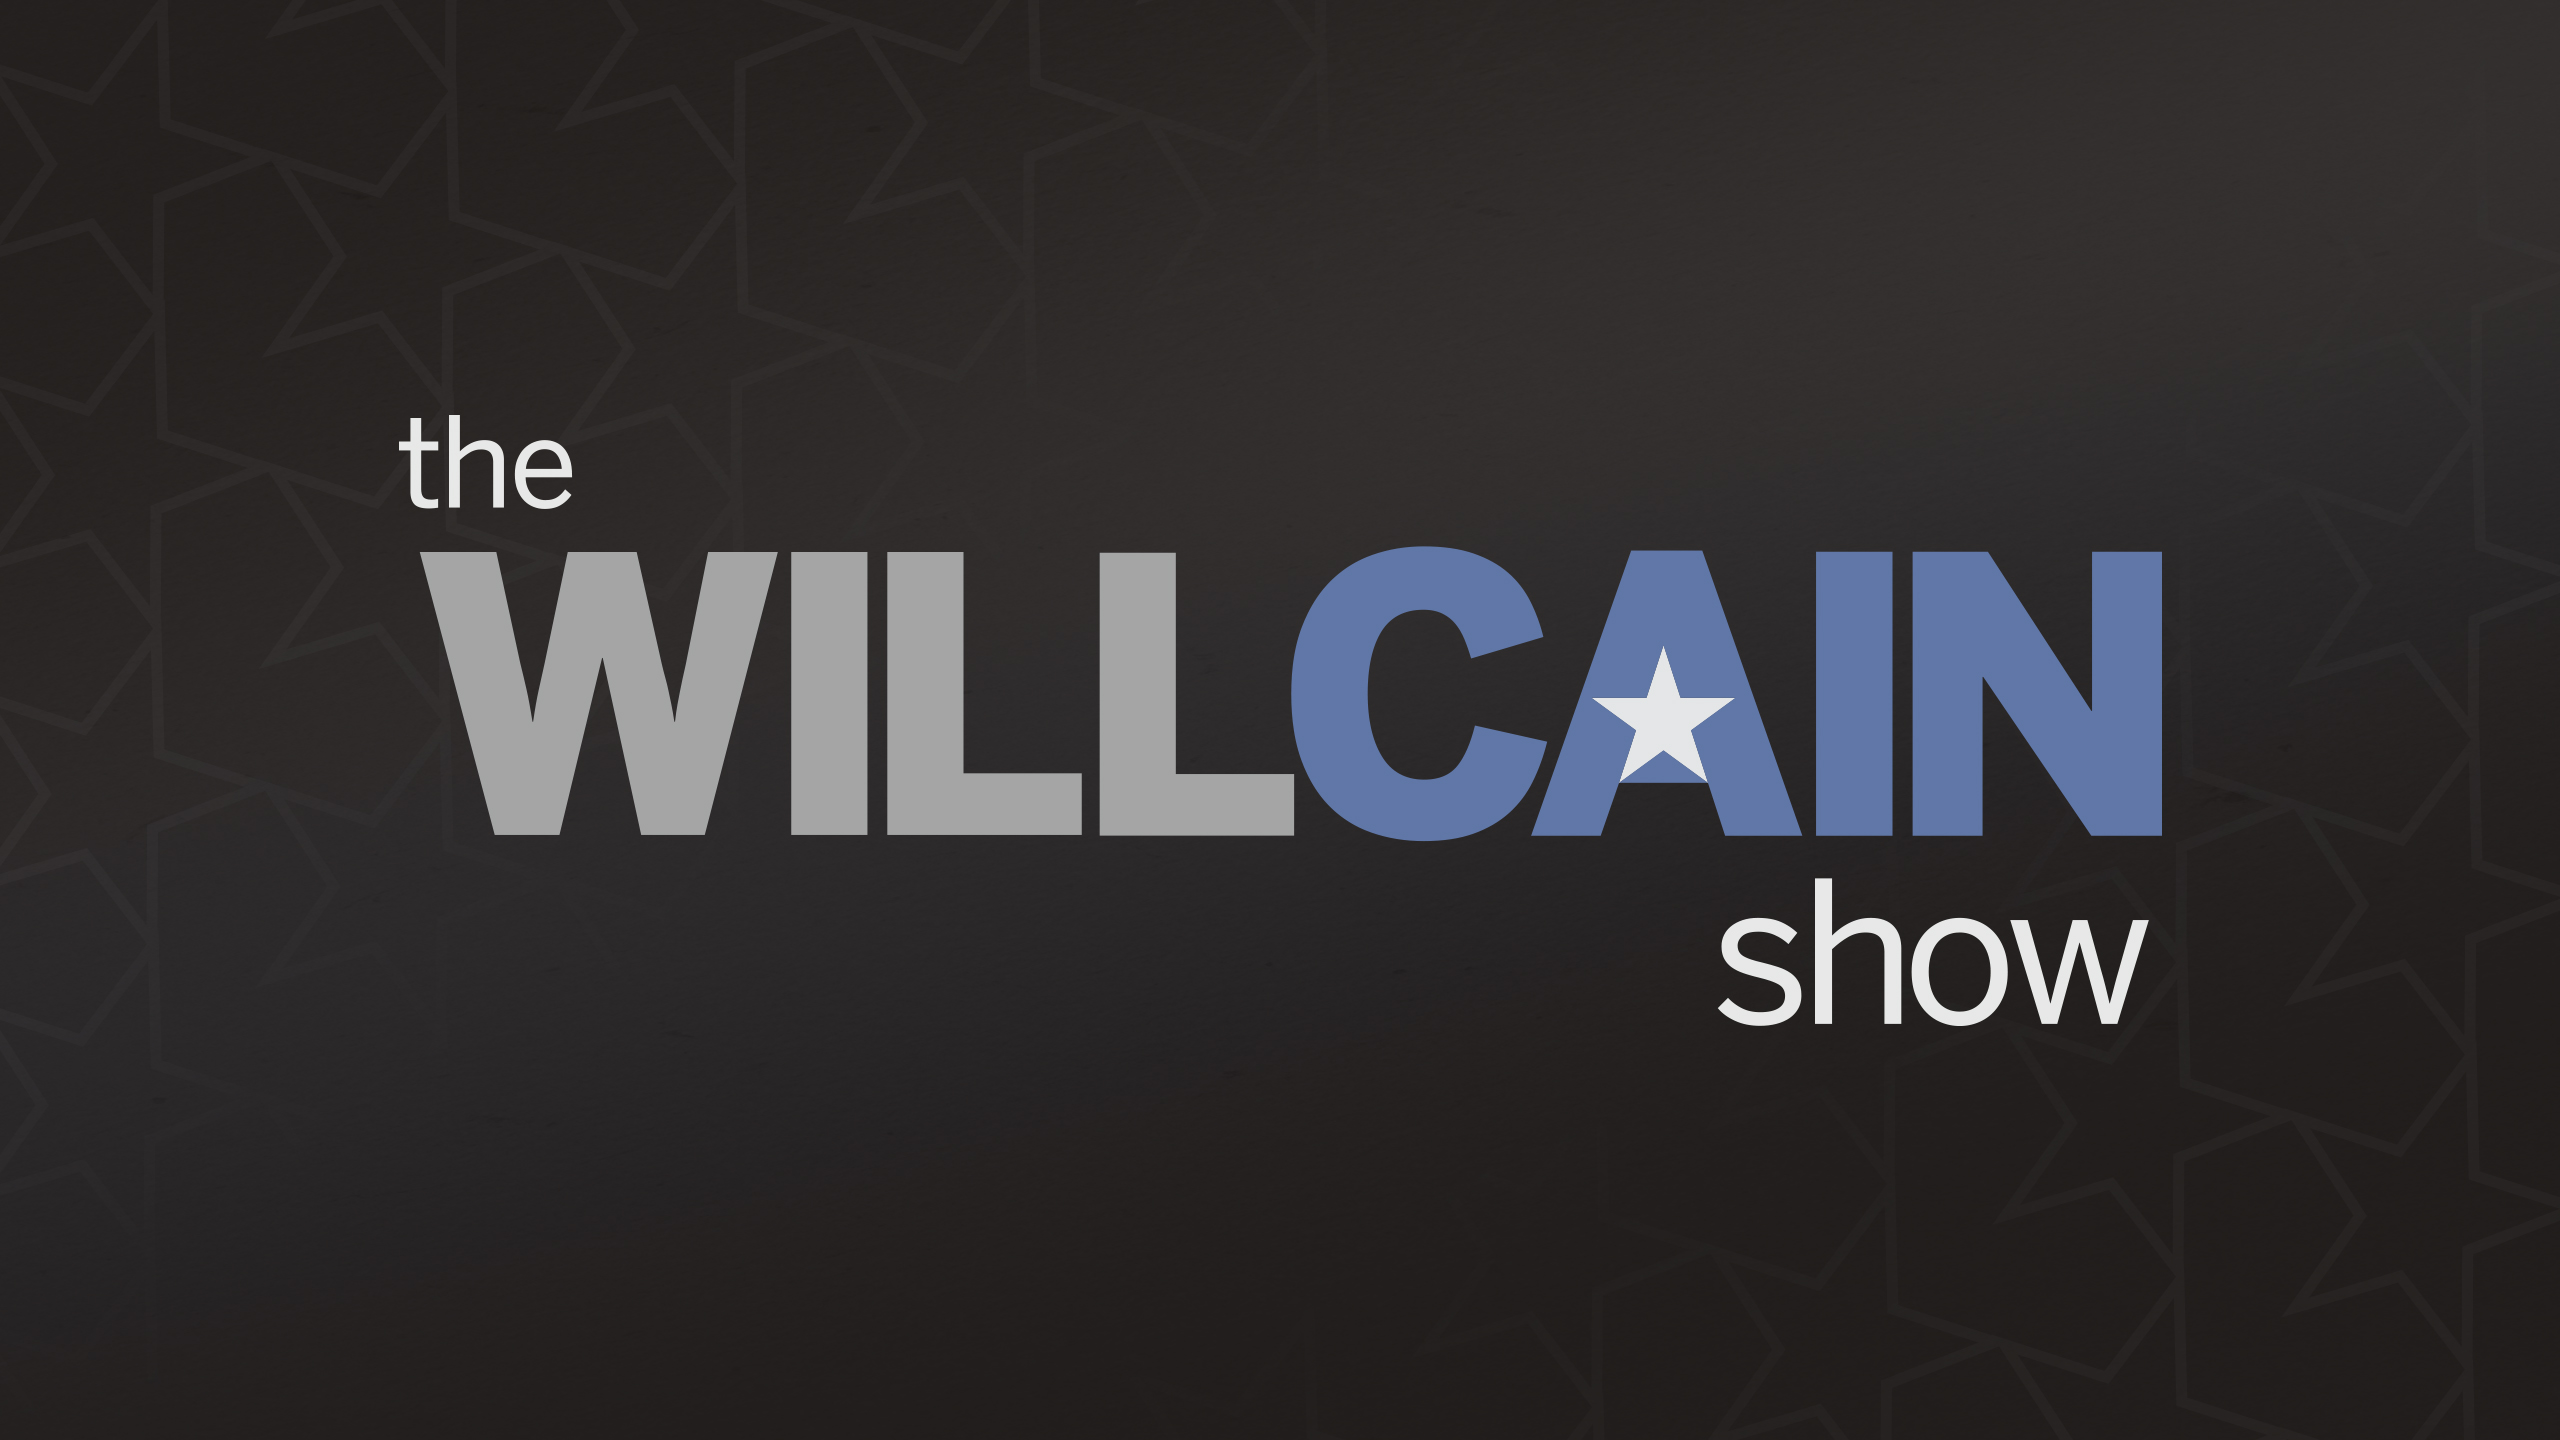 Mon, 10/15 - The Will Cain Show